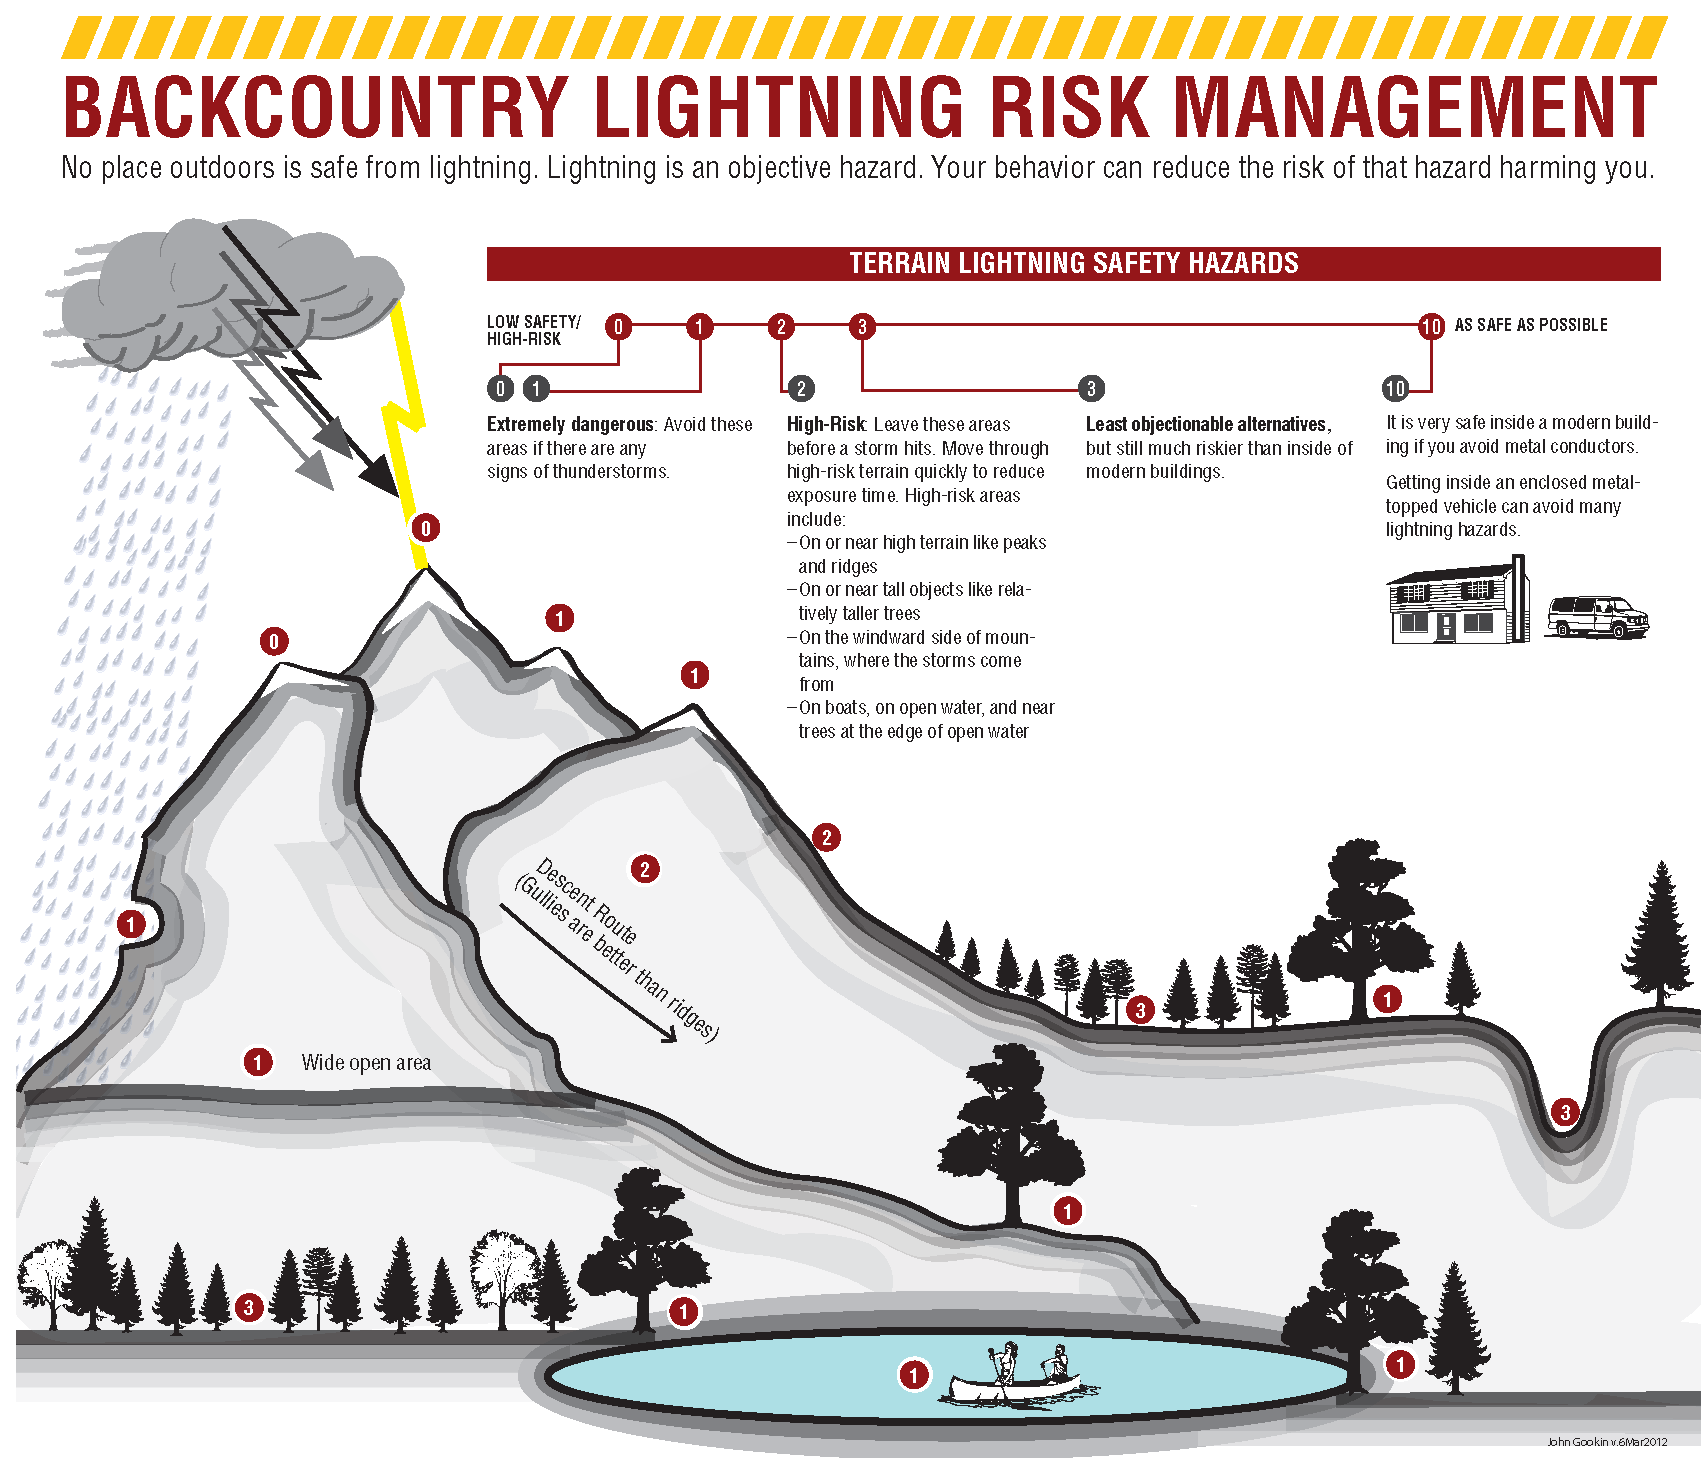 Backcountry lighting safety brochure